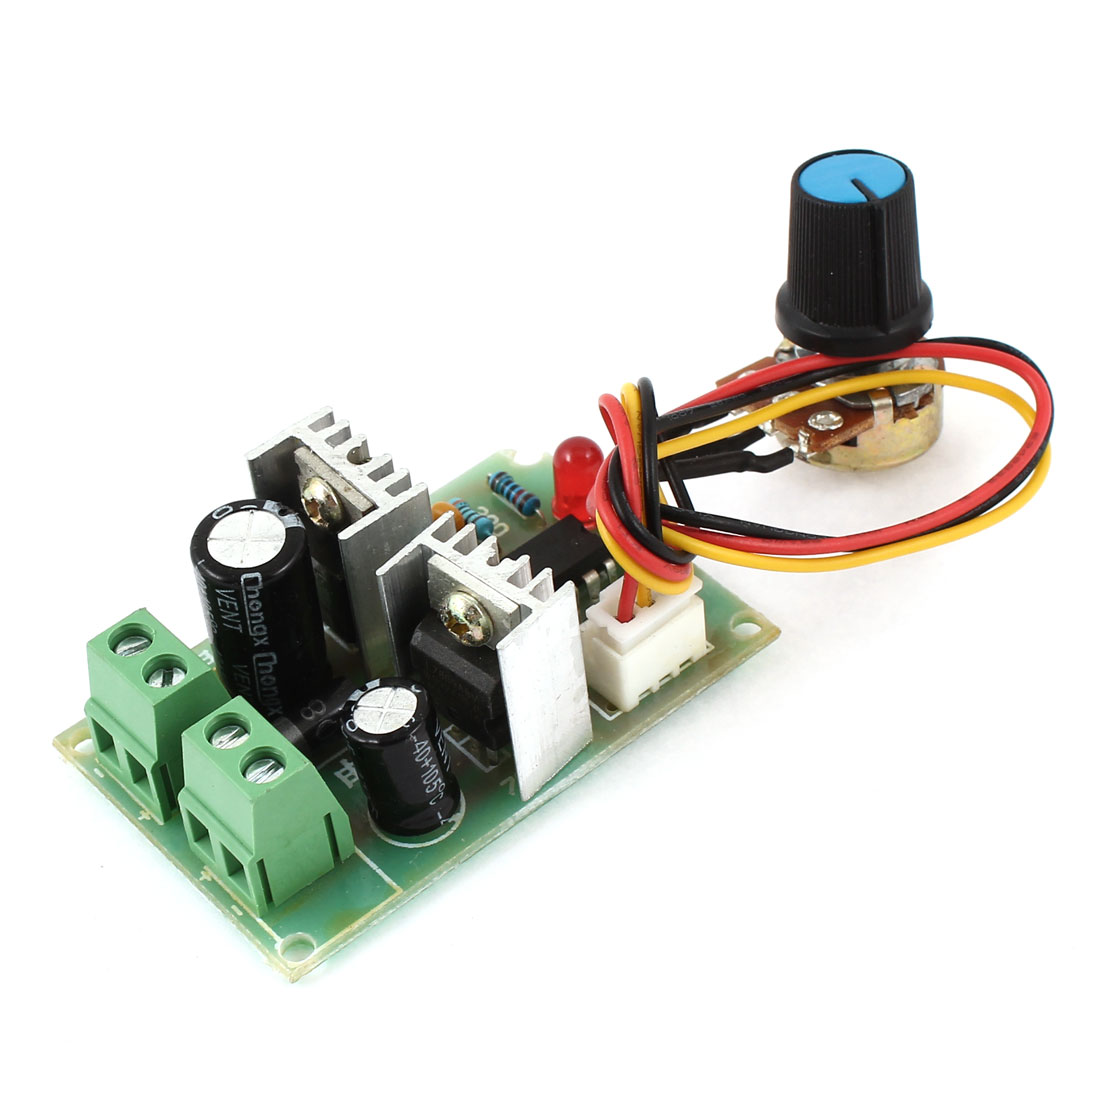 12V-24V-36V Modulation PWM DC Motor Speed Control Switch Governor